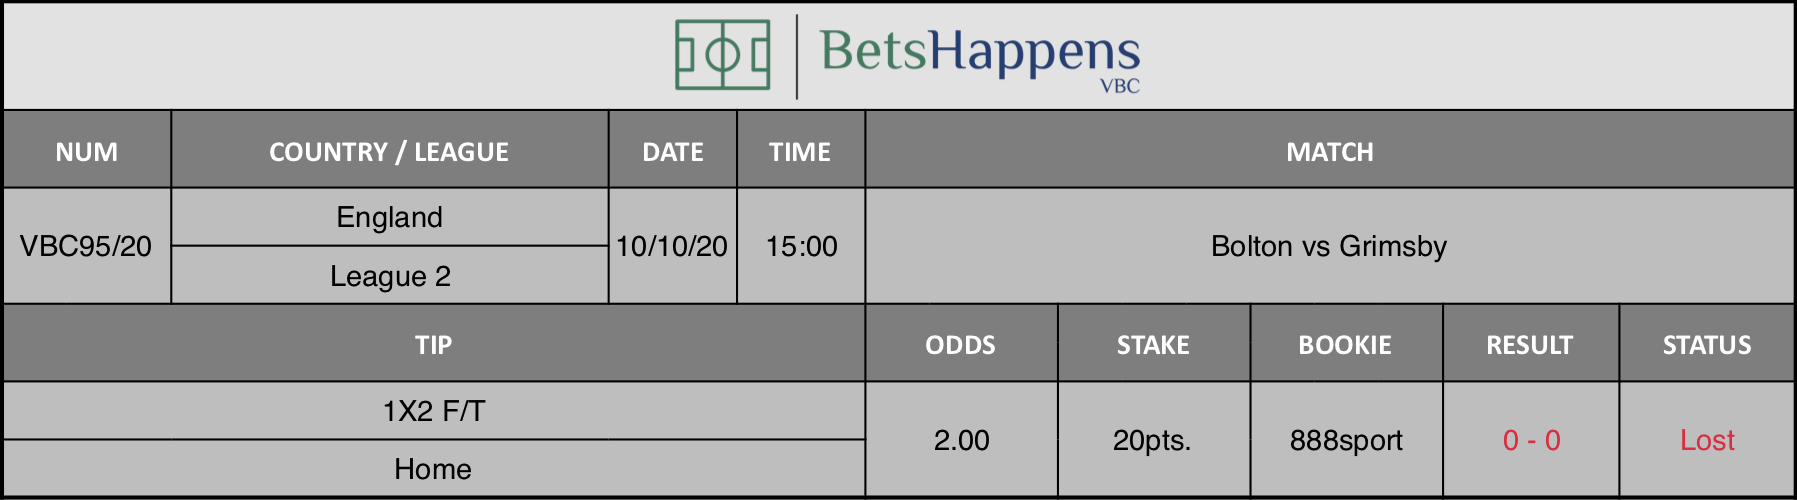 Results of our tip for the Bolton vs Grimsby match where 1X2 F / T Home is recommended.